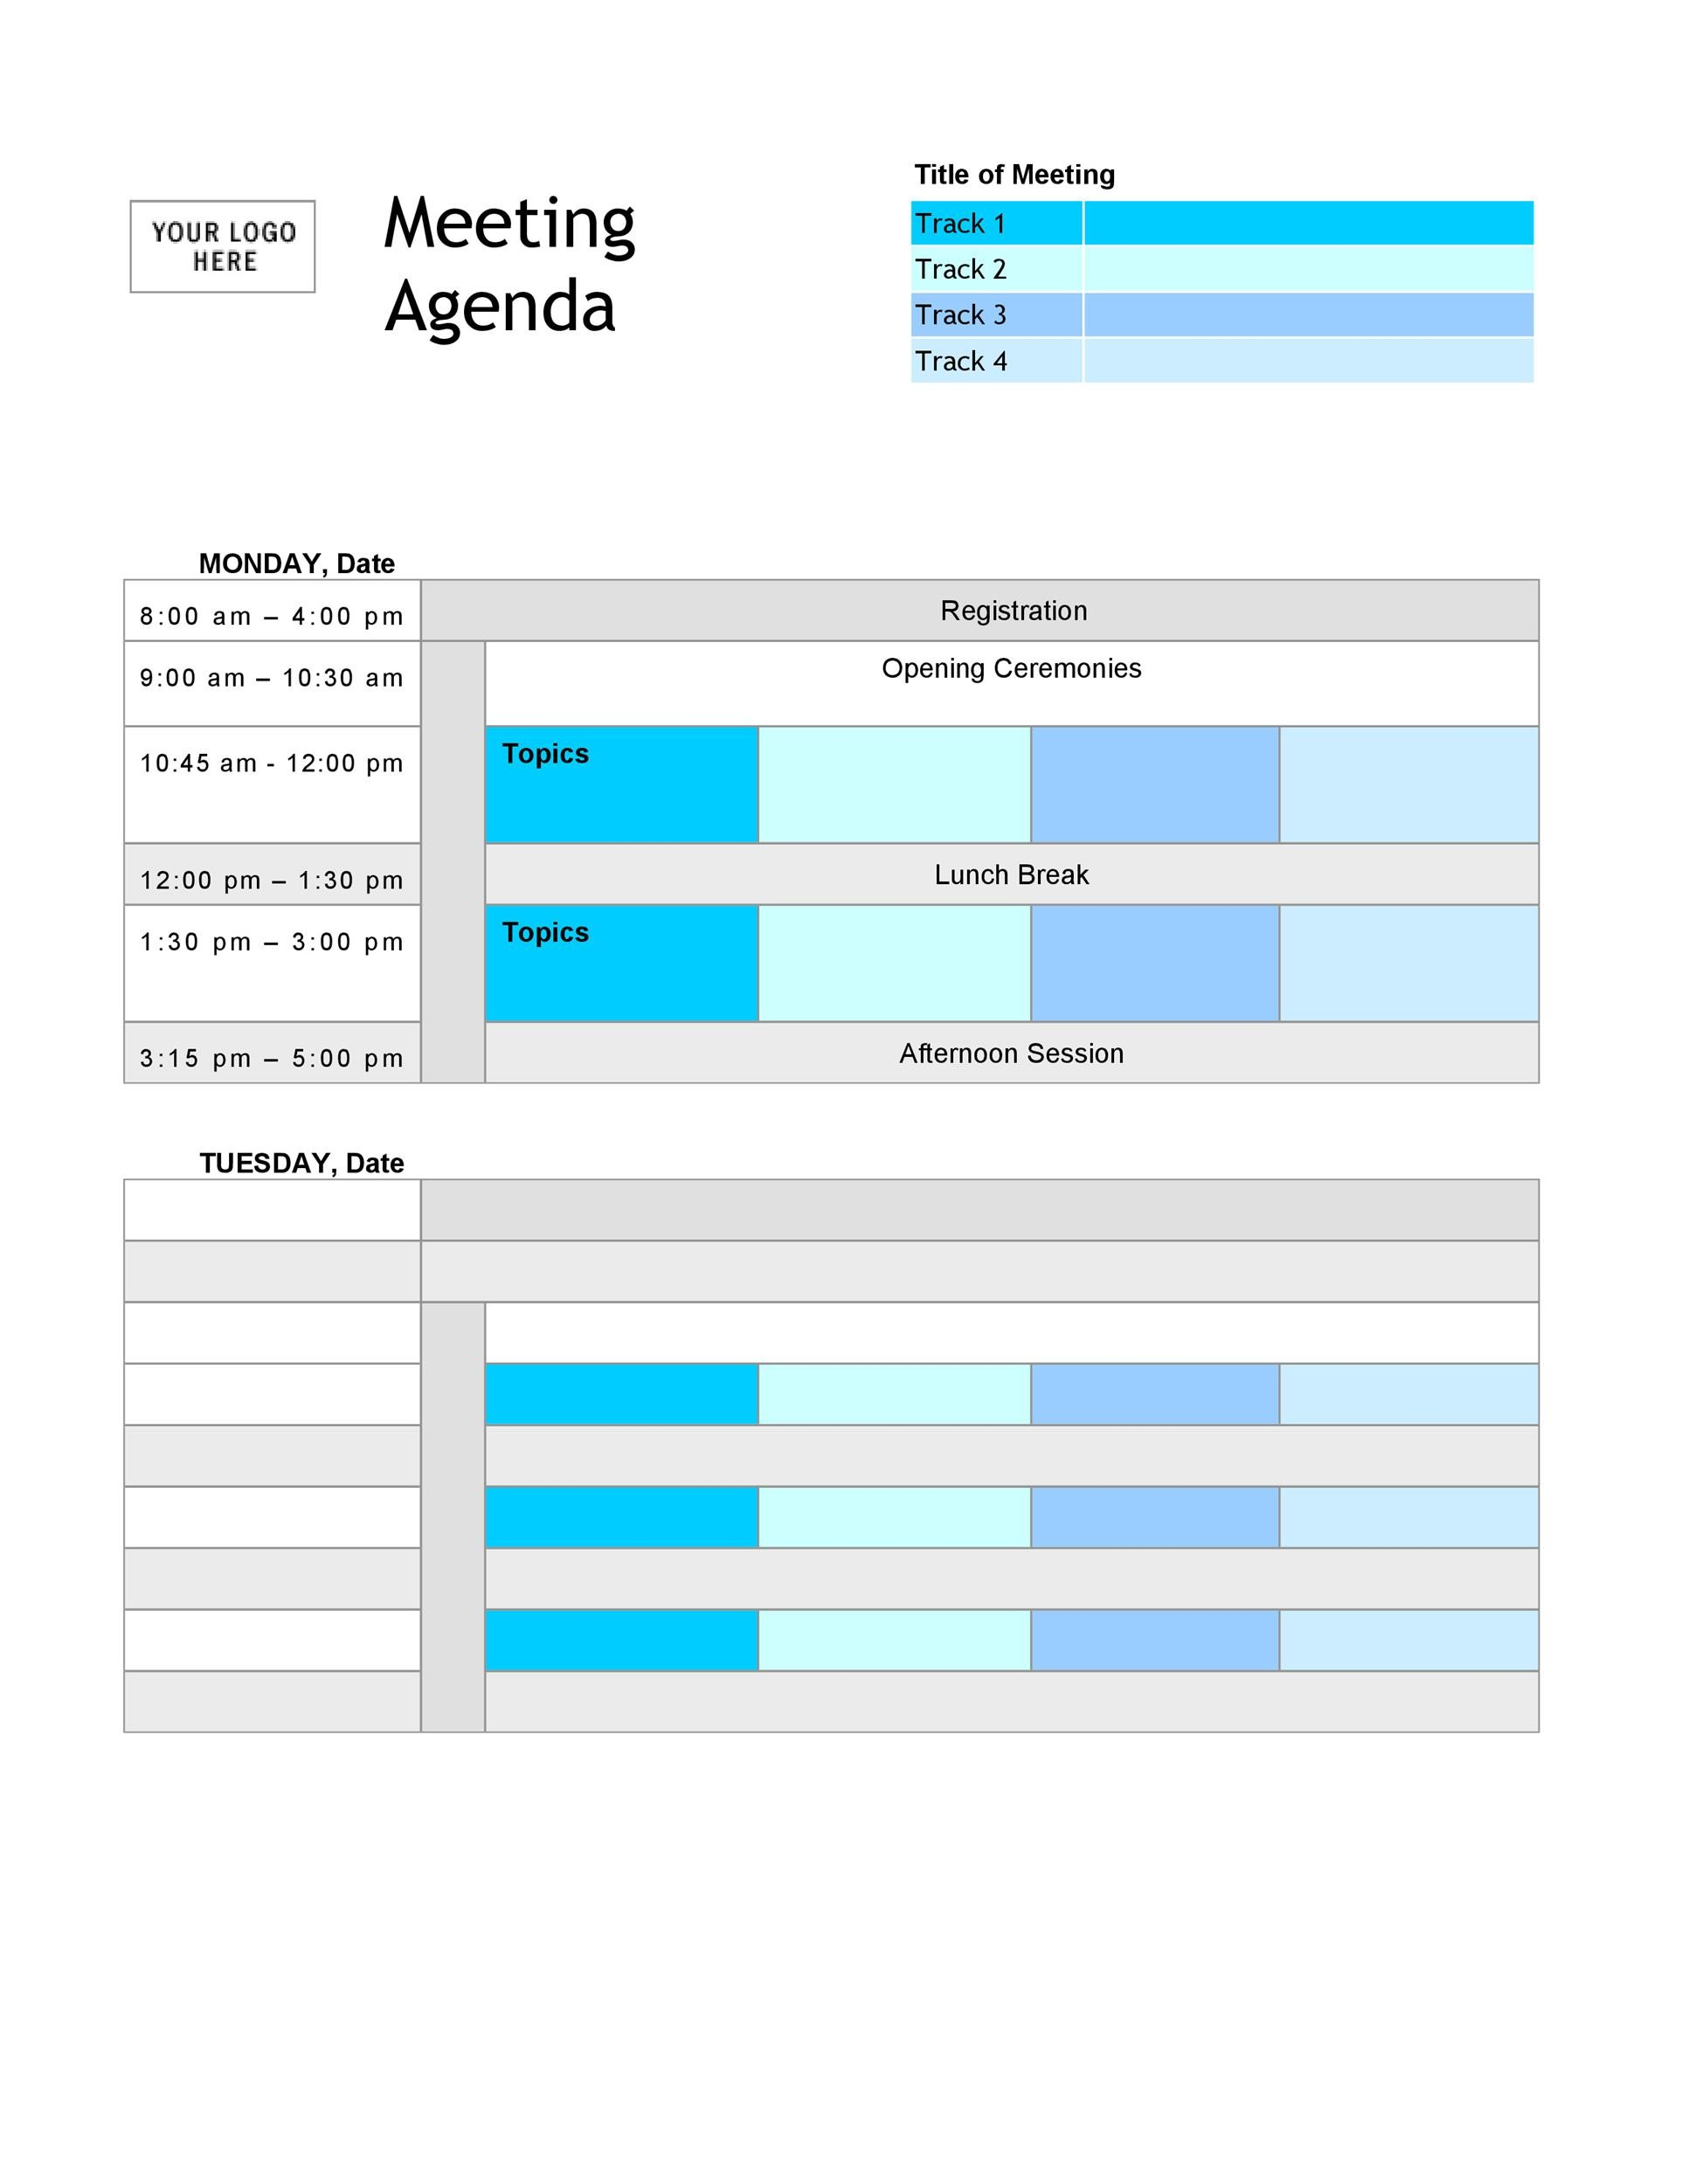 Meeting Agenda Templates